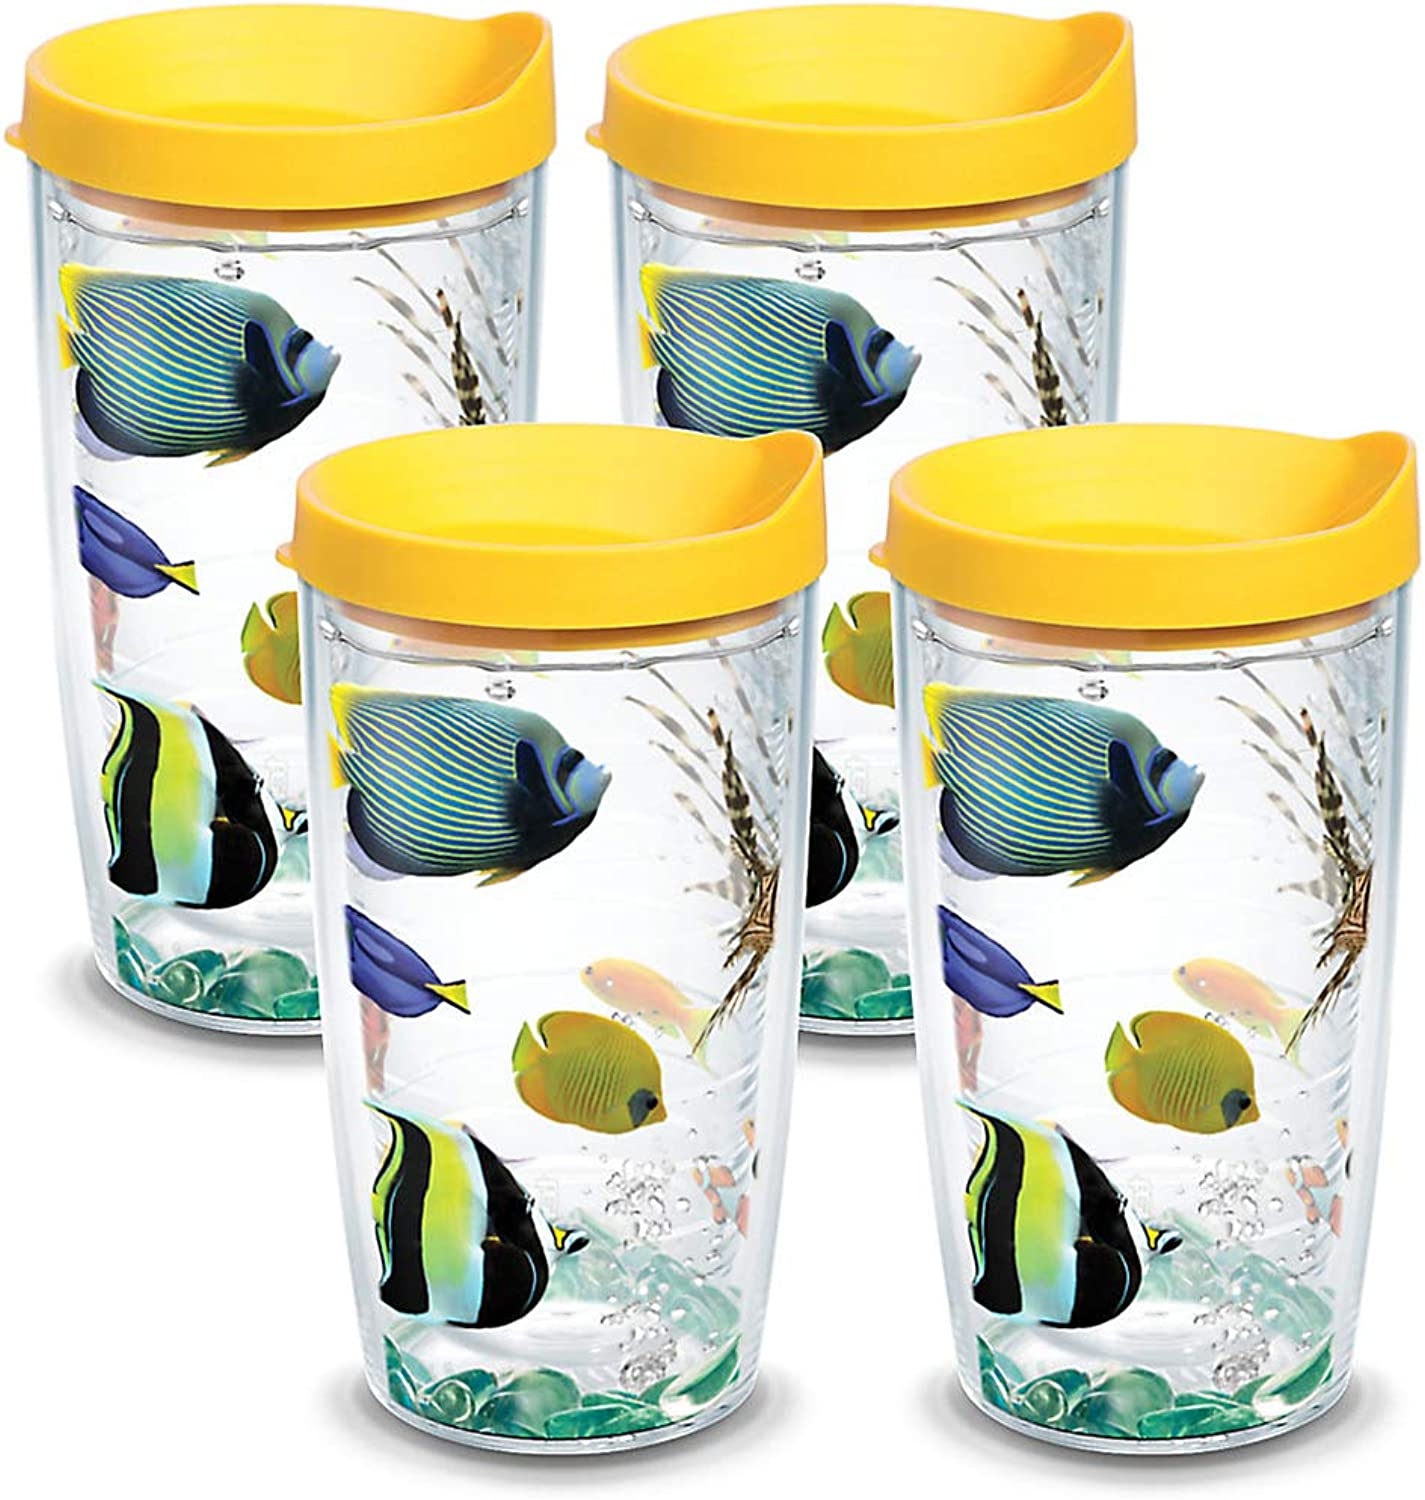 Tervis 1133377 Tropical Fish Tumbler with Wrap and Yellow Lid 4 Pack 16oz, Clear